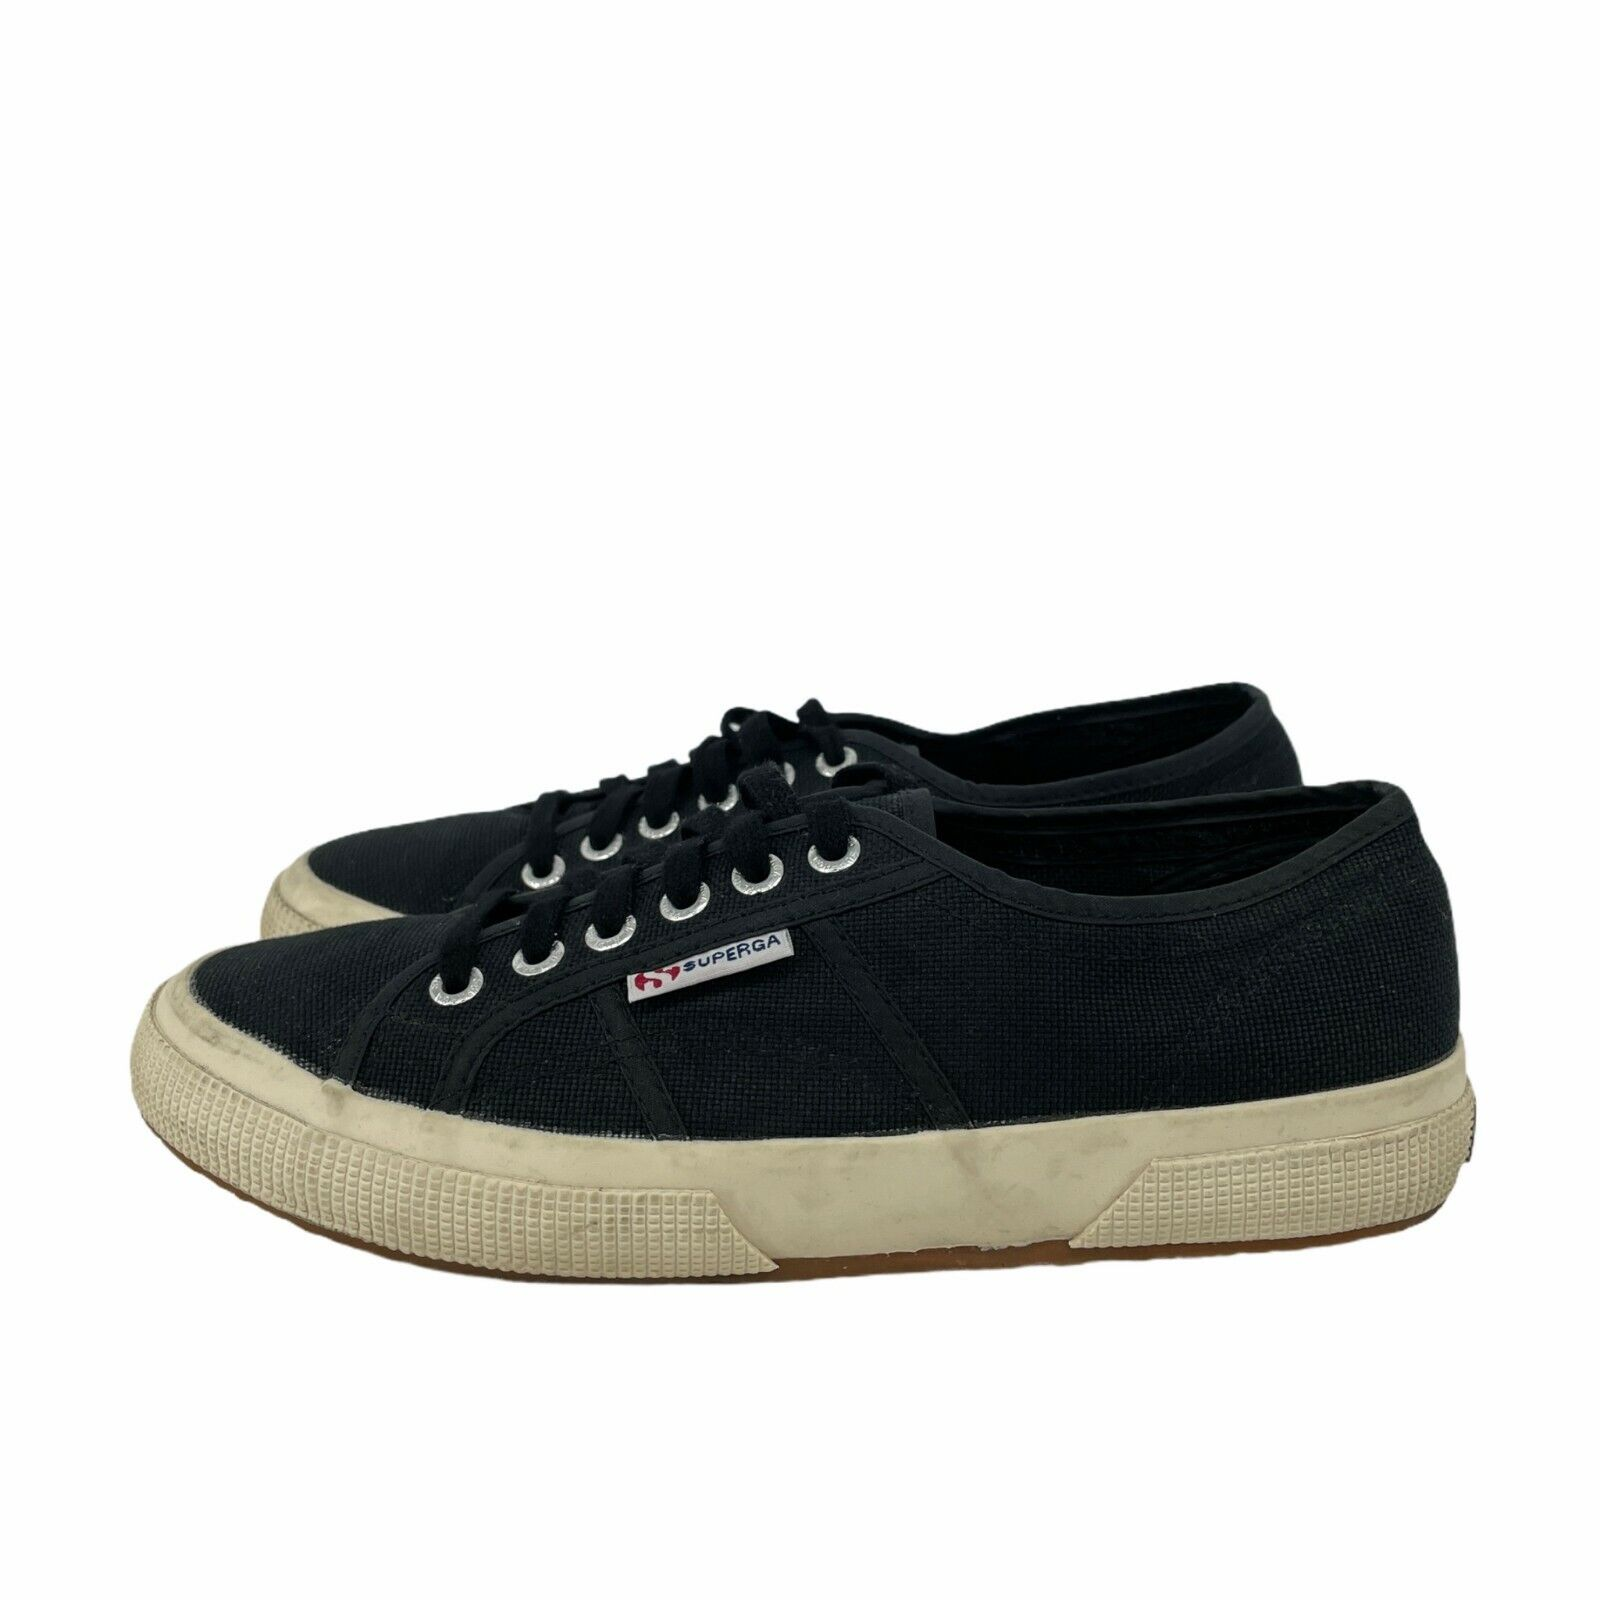 Superga Women's Cotu Classic Lace-up Sneakers Navy Blue Sz 8 100% Canvas Fabric